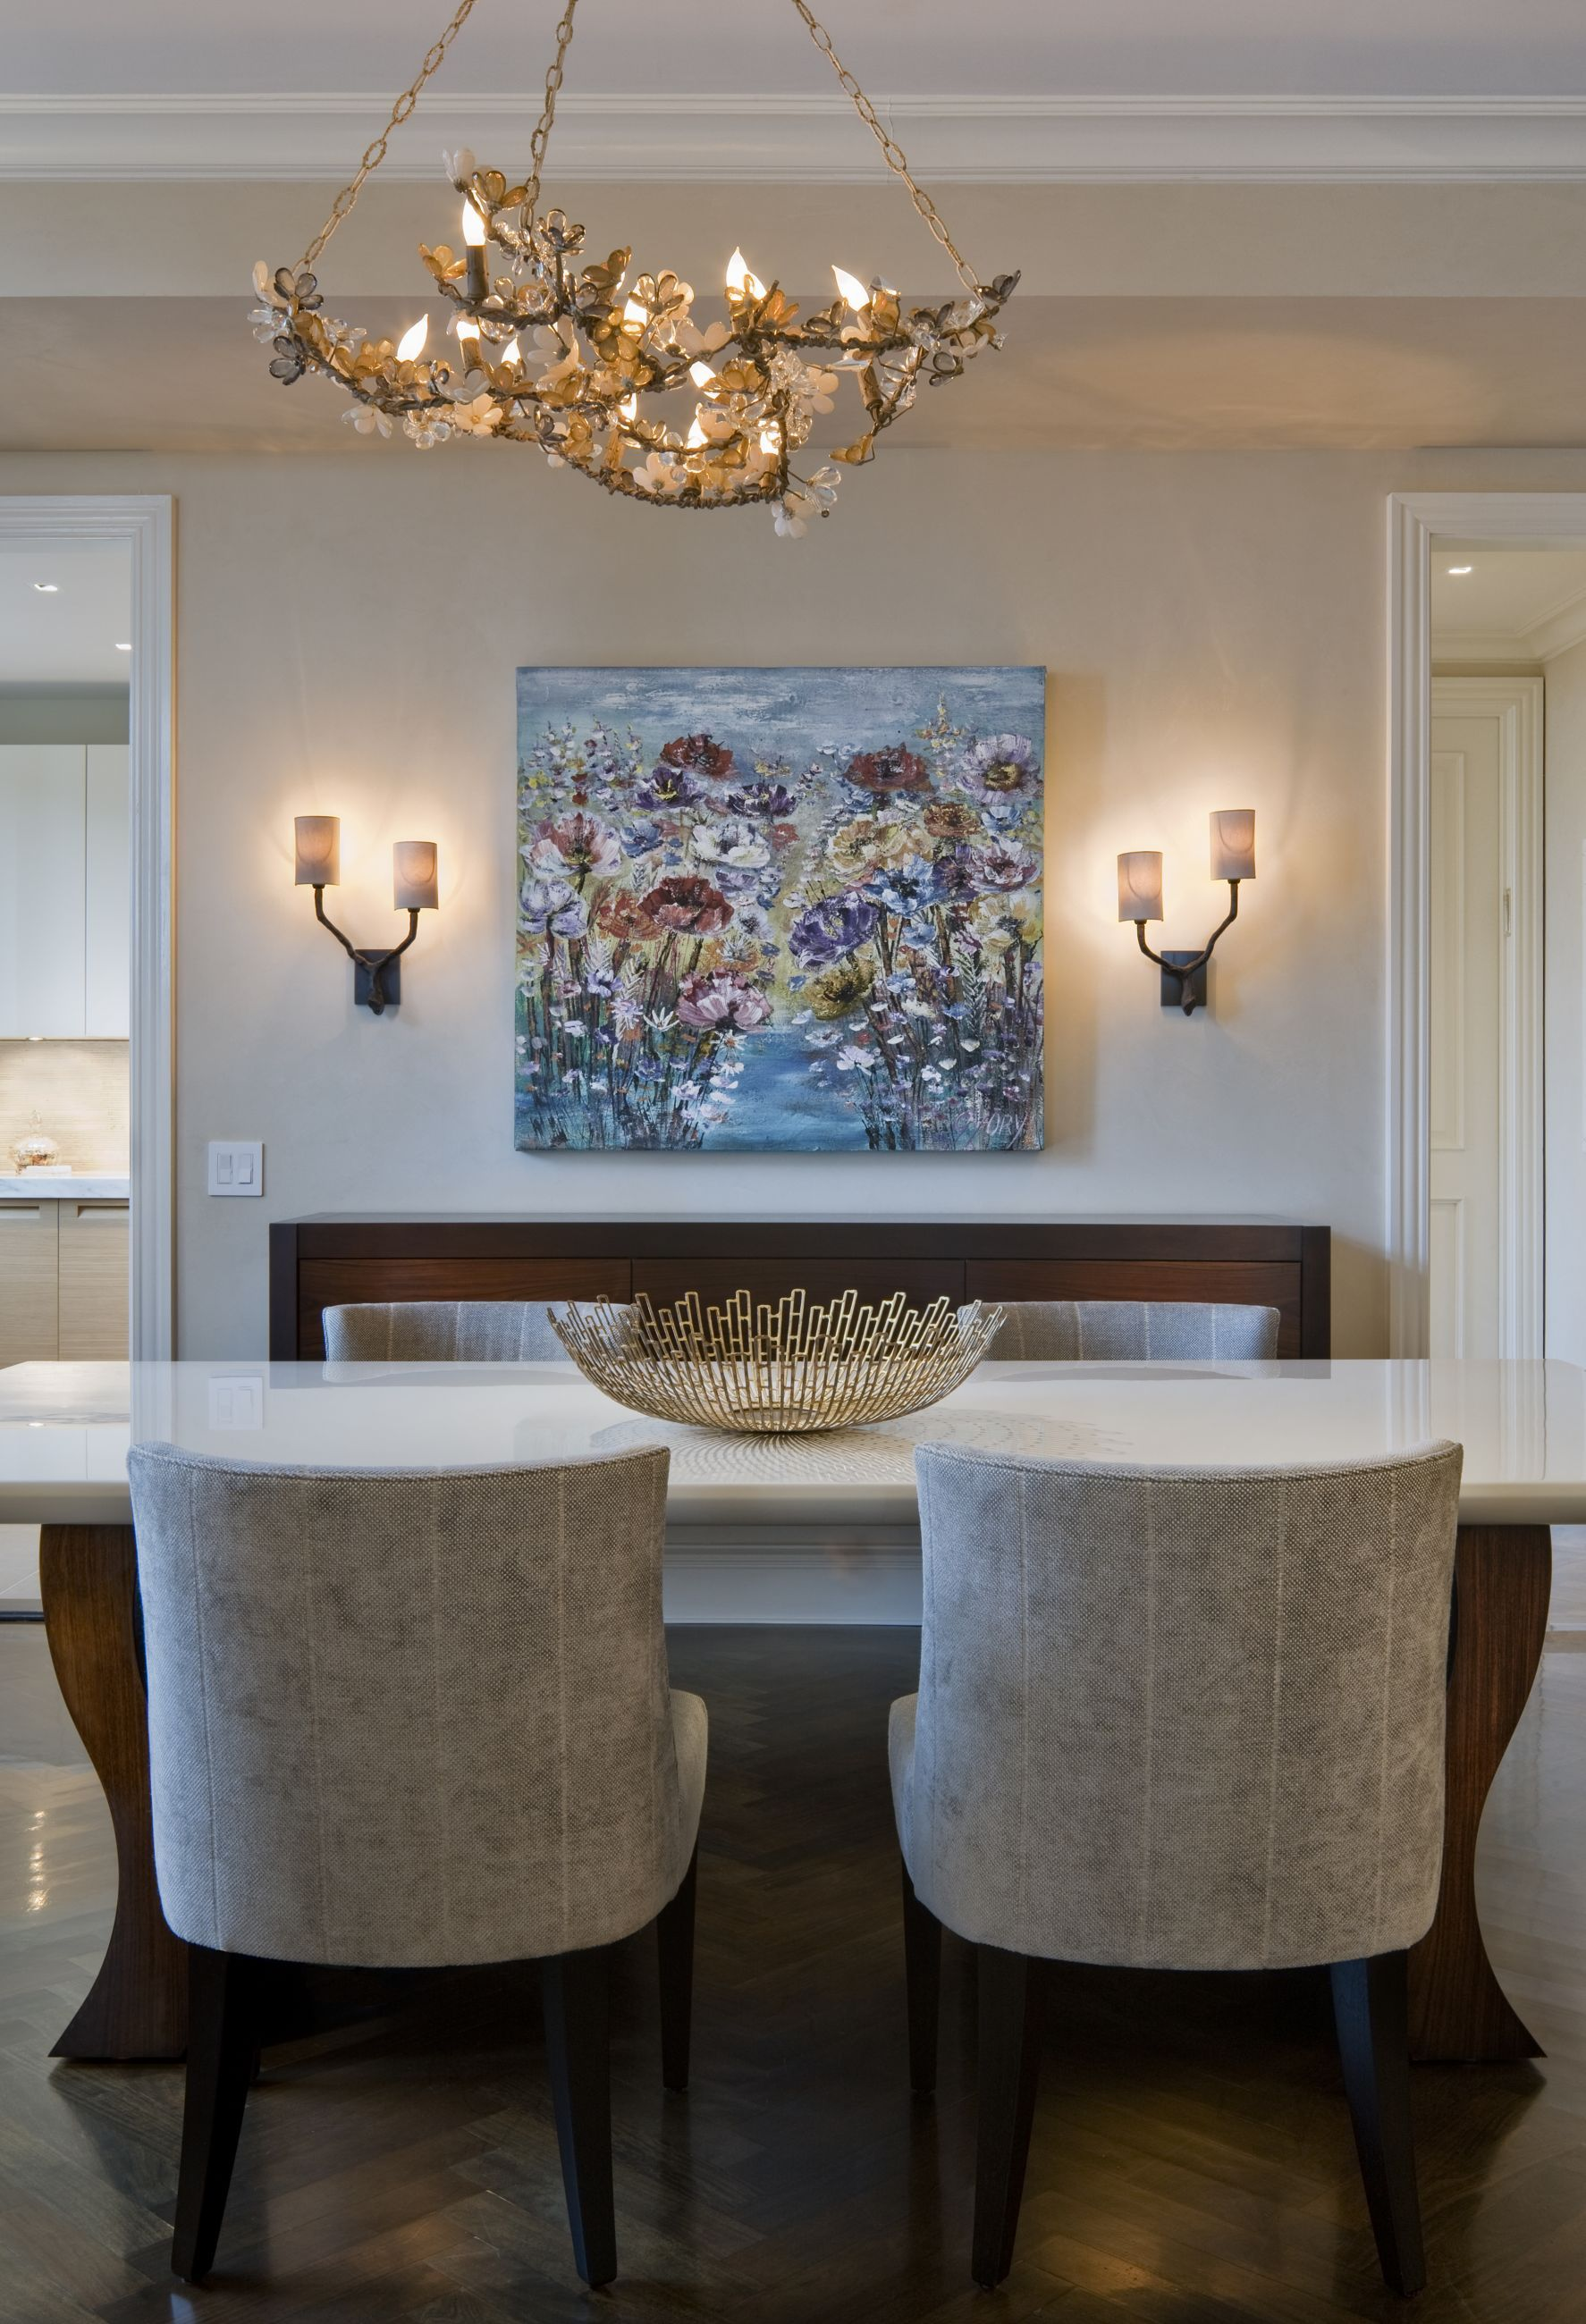 Light Up: How To Illuminate A Room With Wall Sconces